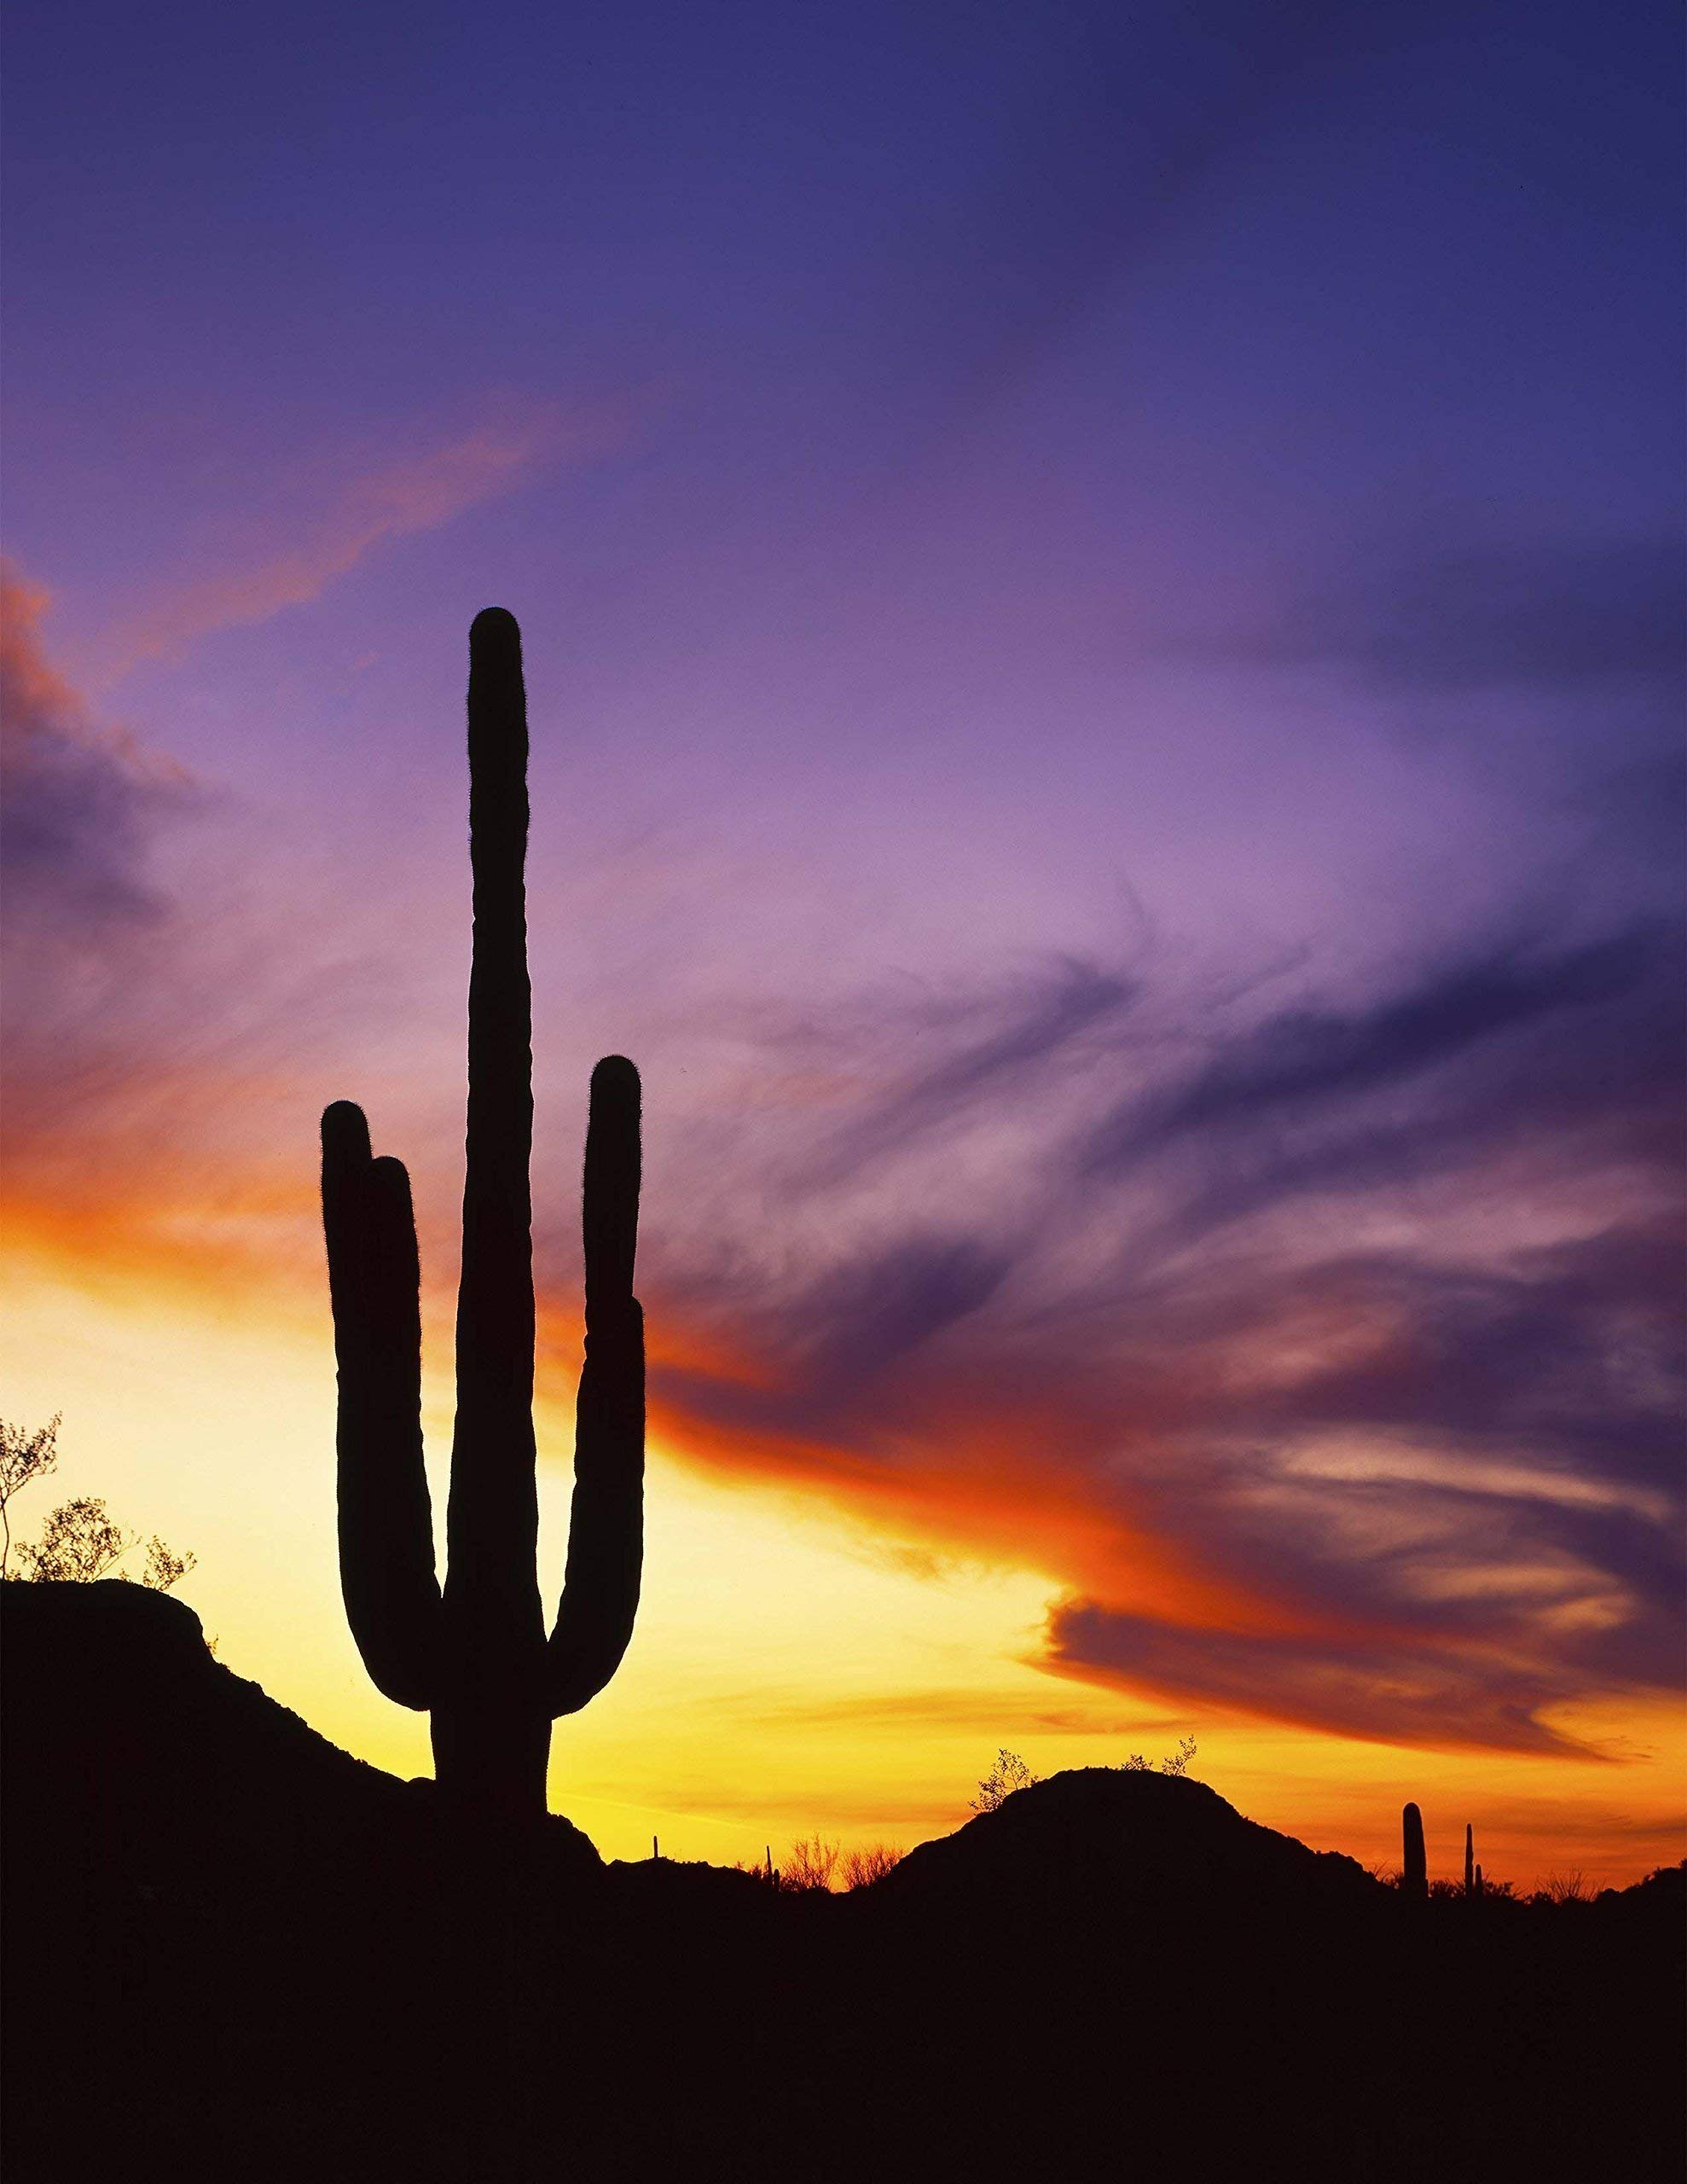 Saguaros at Sunset, Saguaro National Park, Arizona, landscape photo, nature photography, wall art, home decor, office decor, sizes up to 44x66 inches, fine art print, signed by the artist.